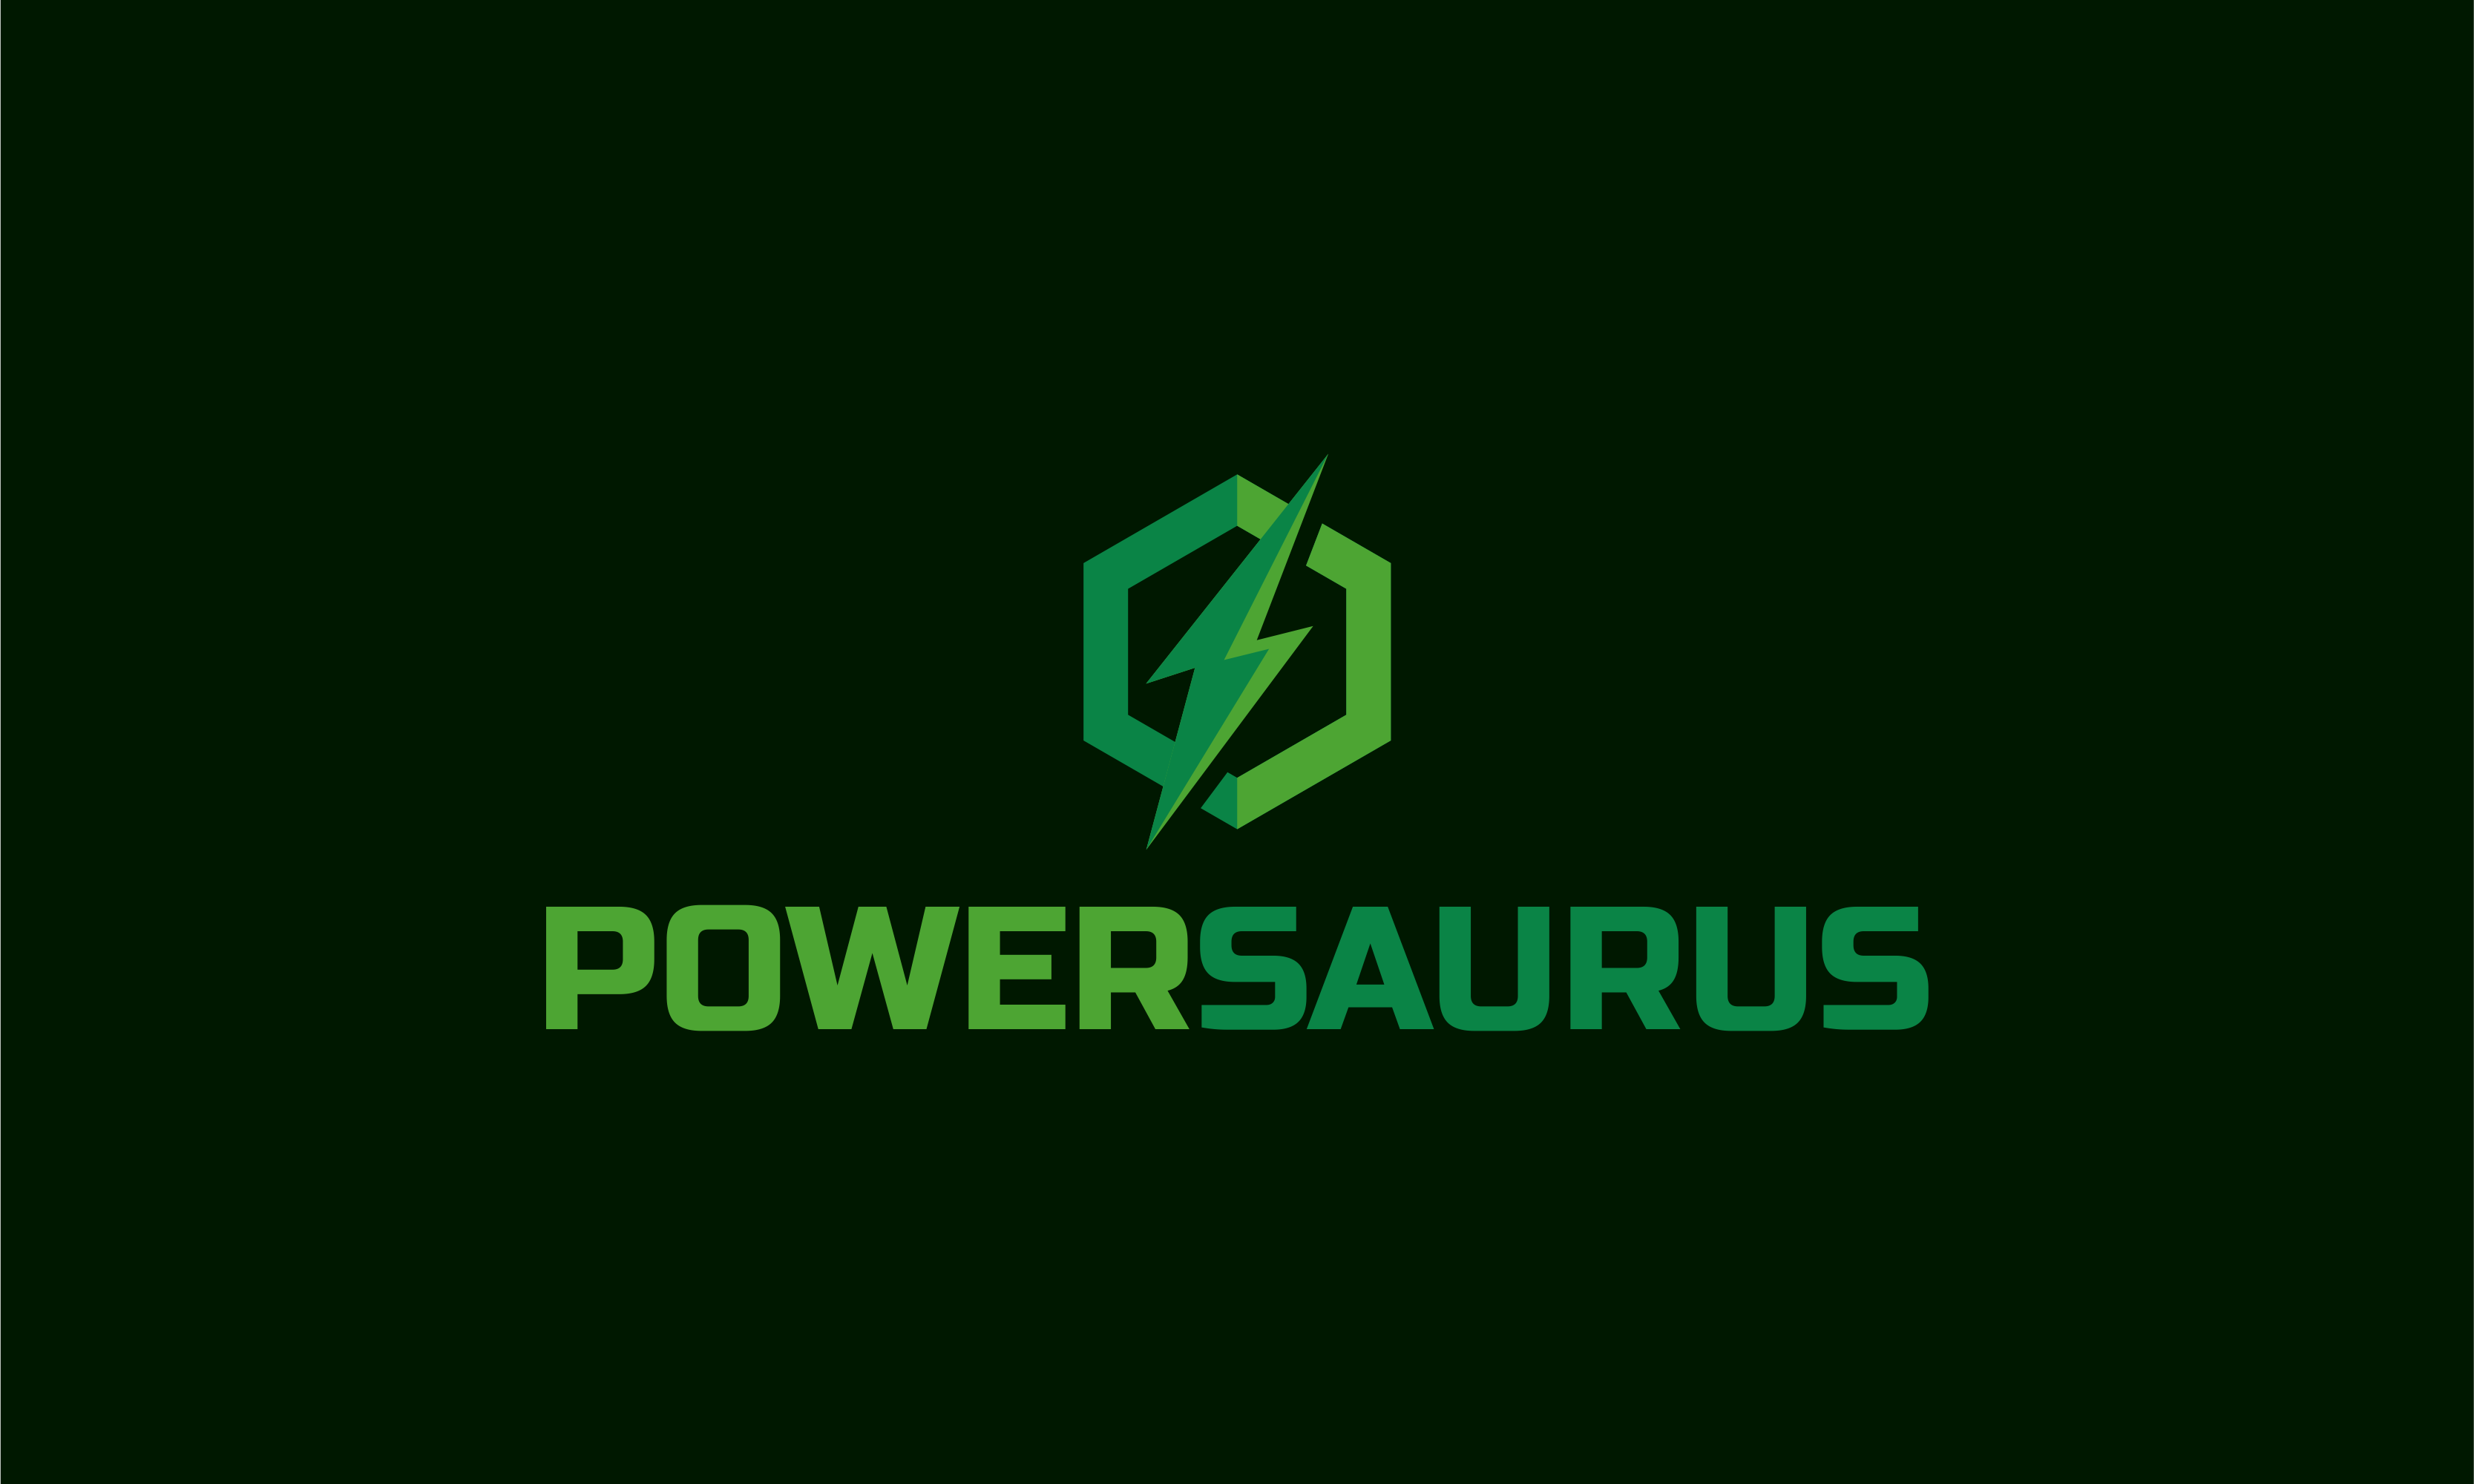 Powersaurus - Energy brand name for sale